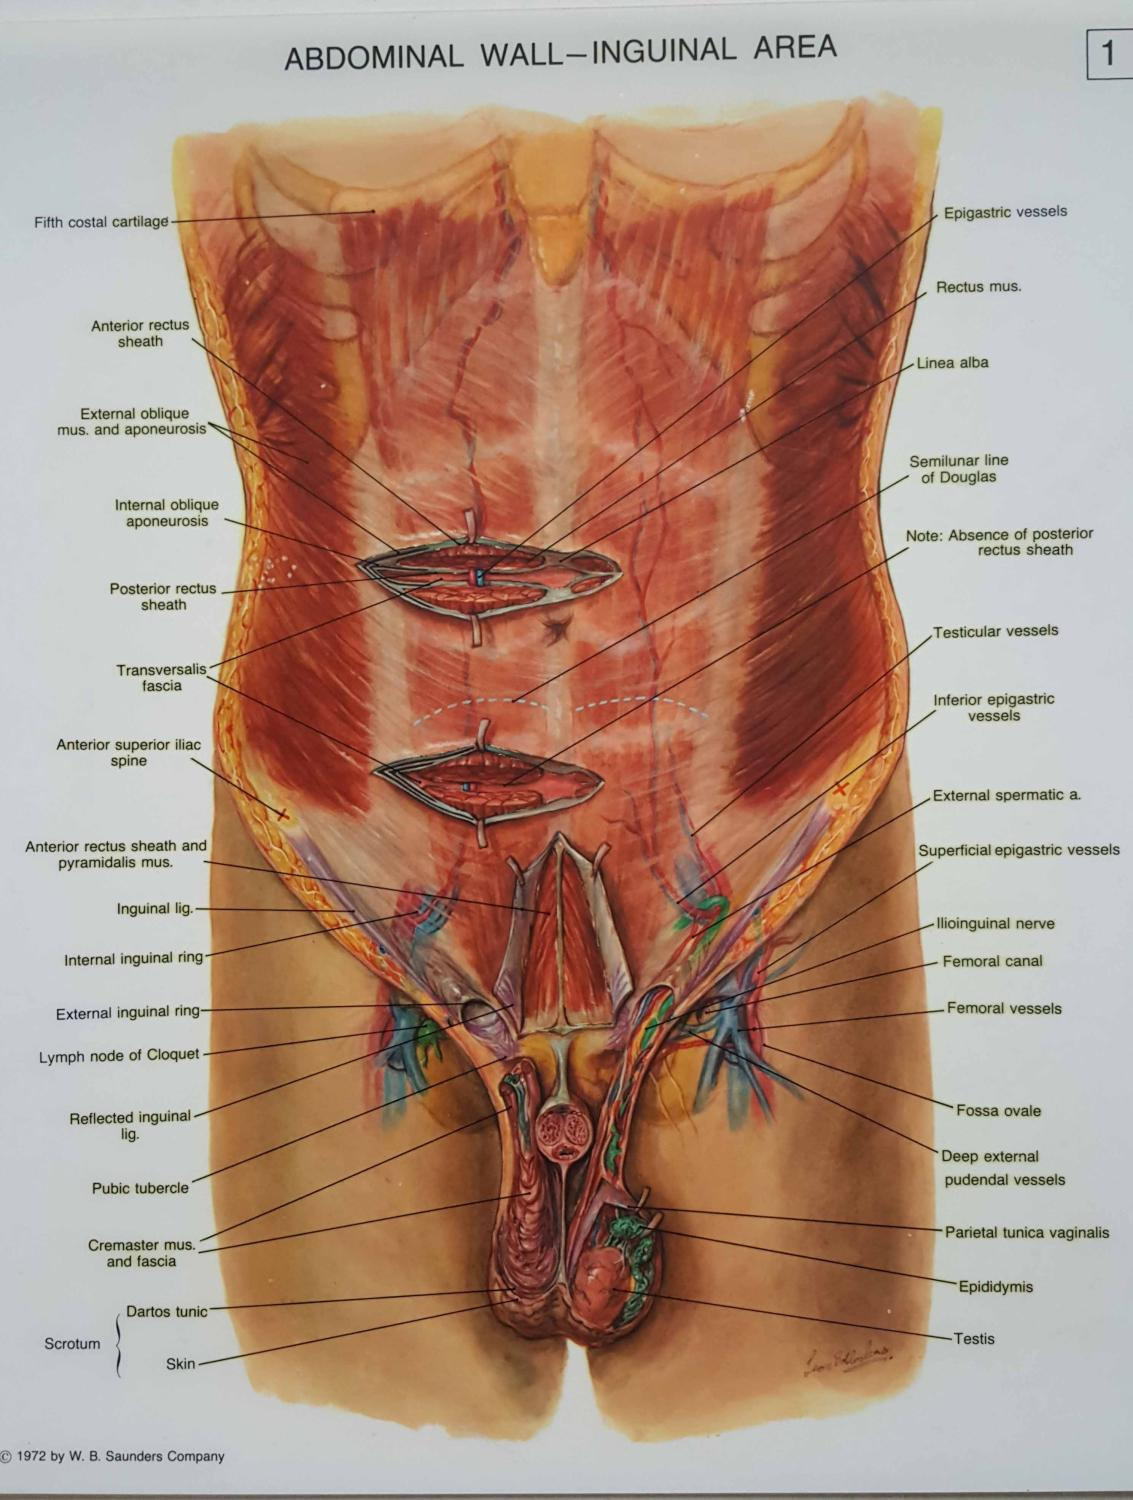 Surgical Anatomy Of The Abdomen And Pelvis A Series Of Translucent